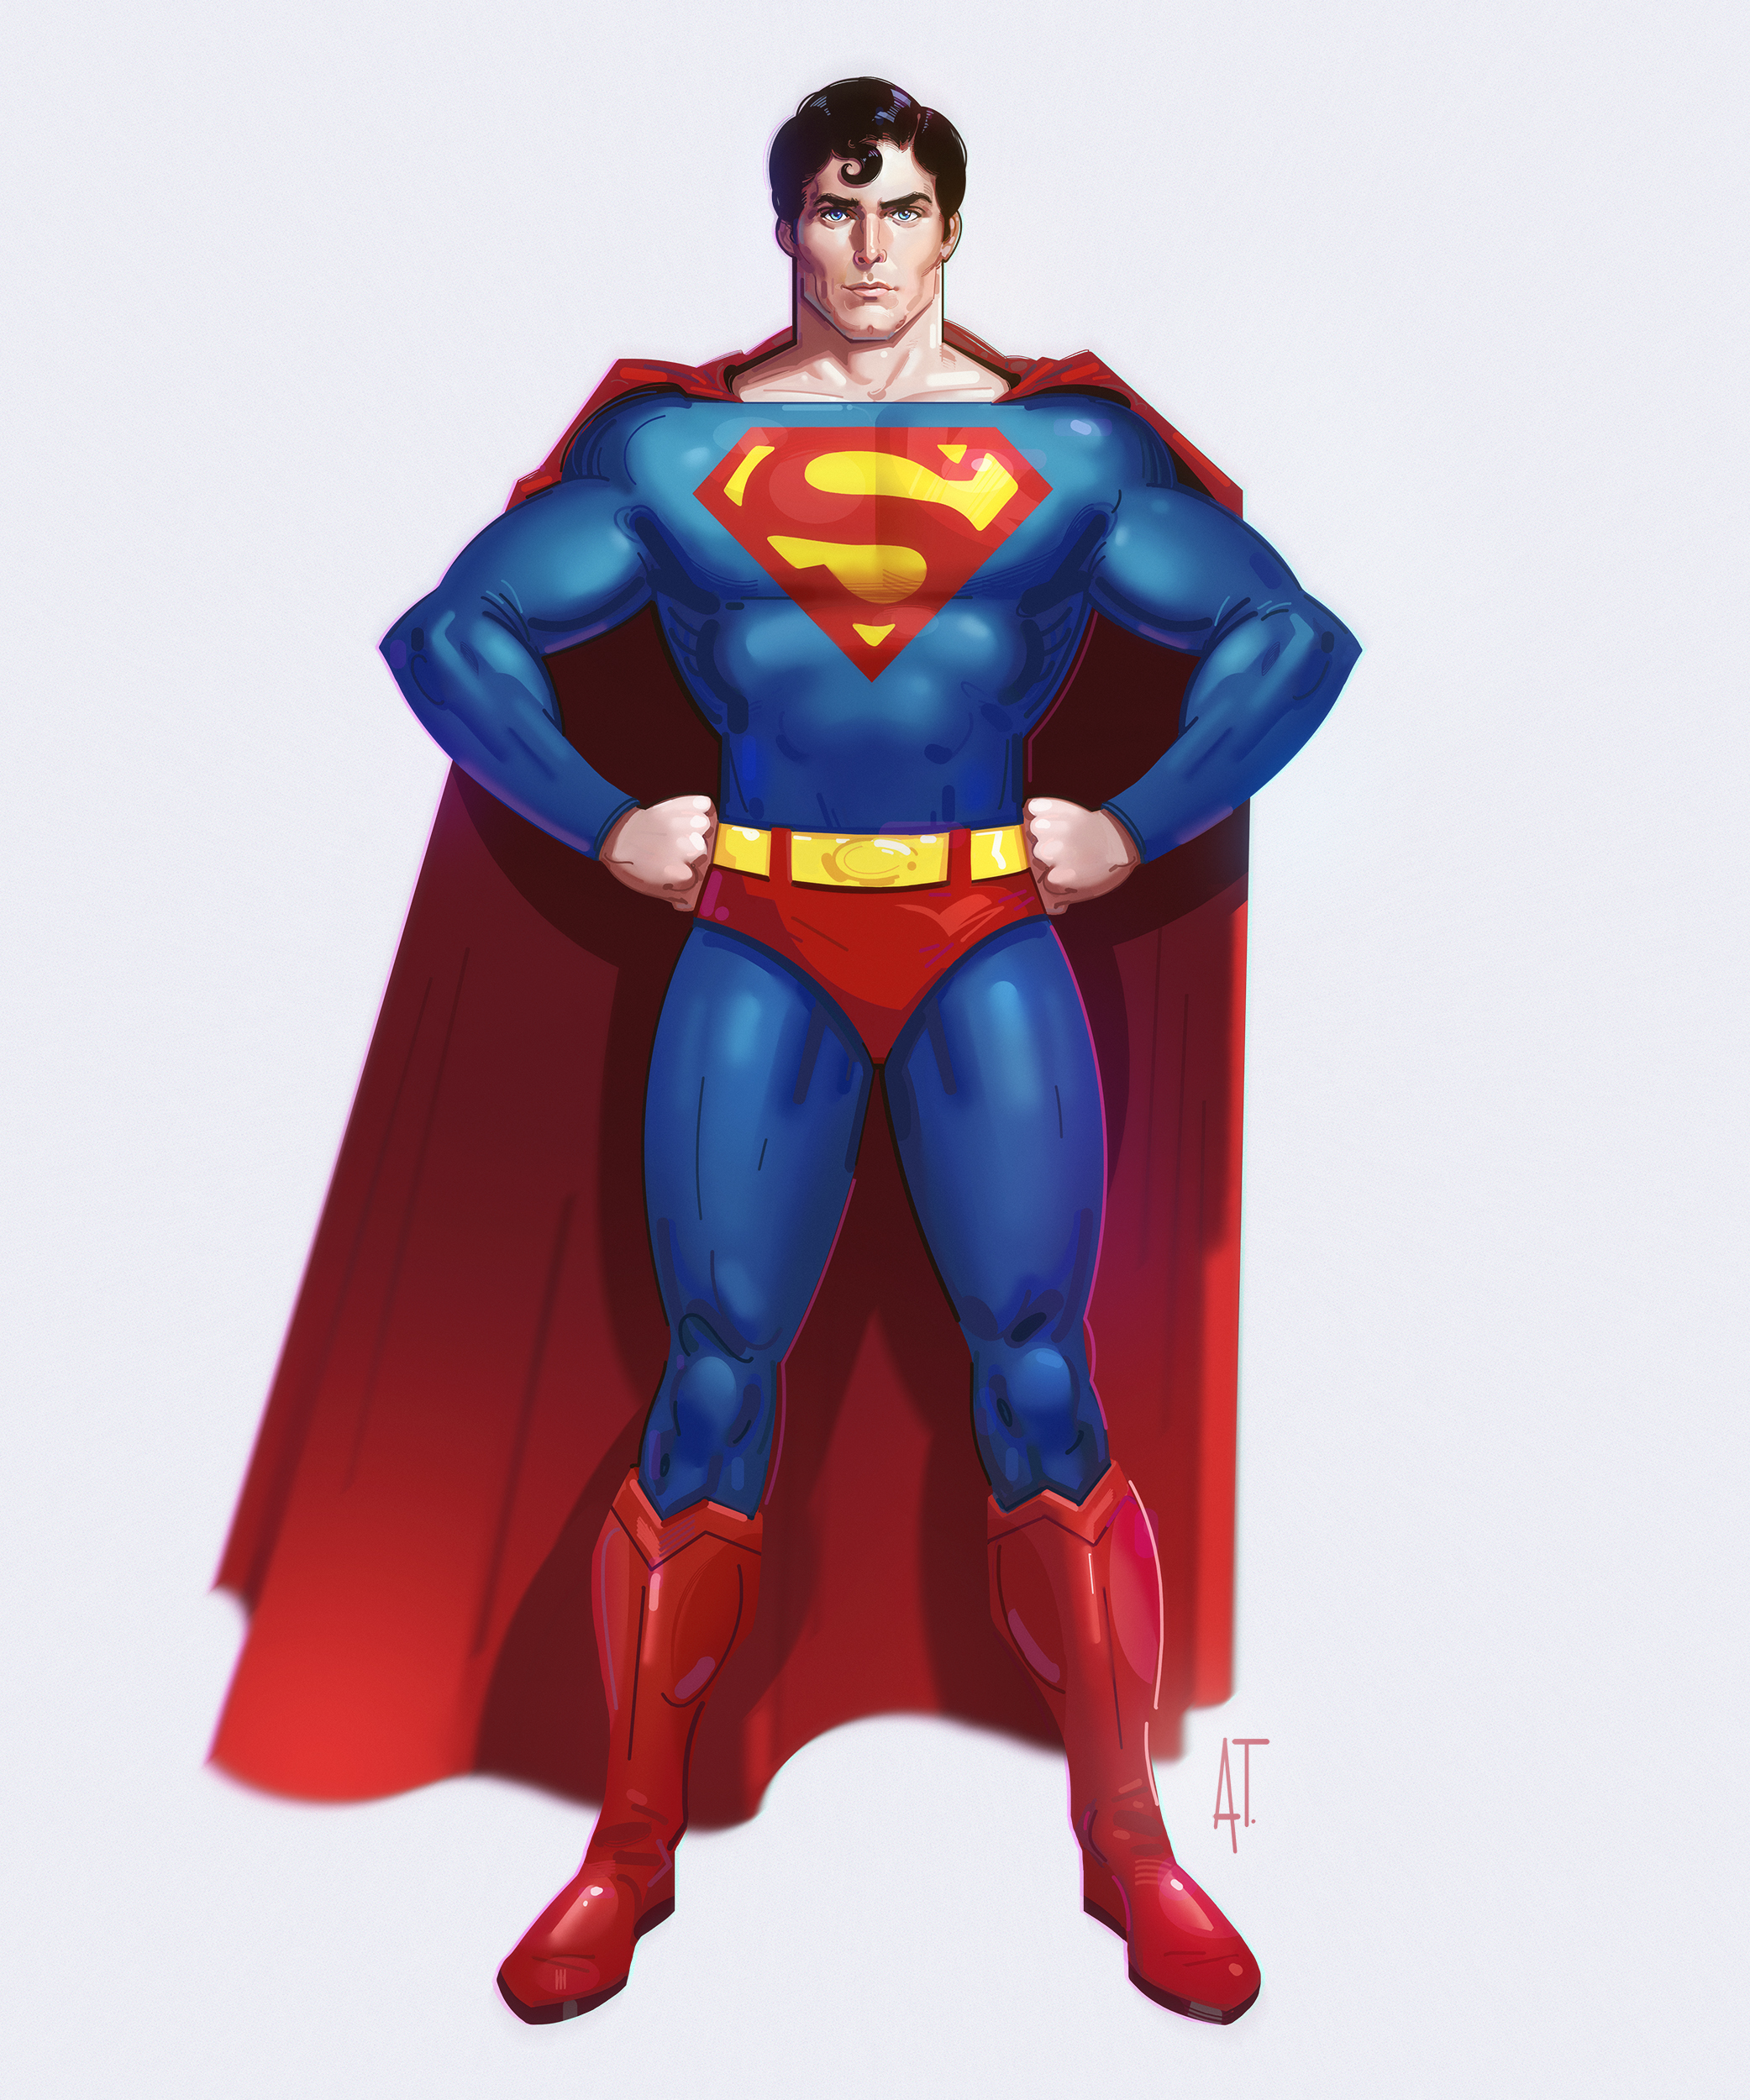 icons_superman_web_big.jpg